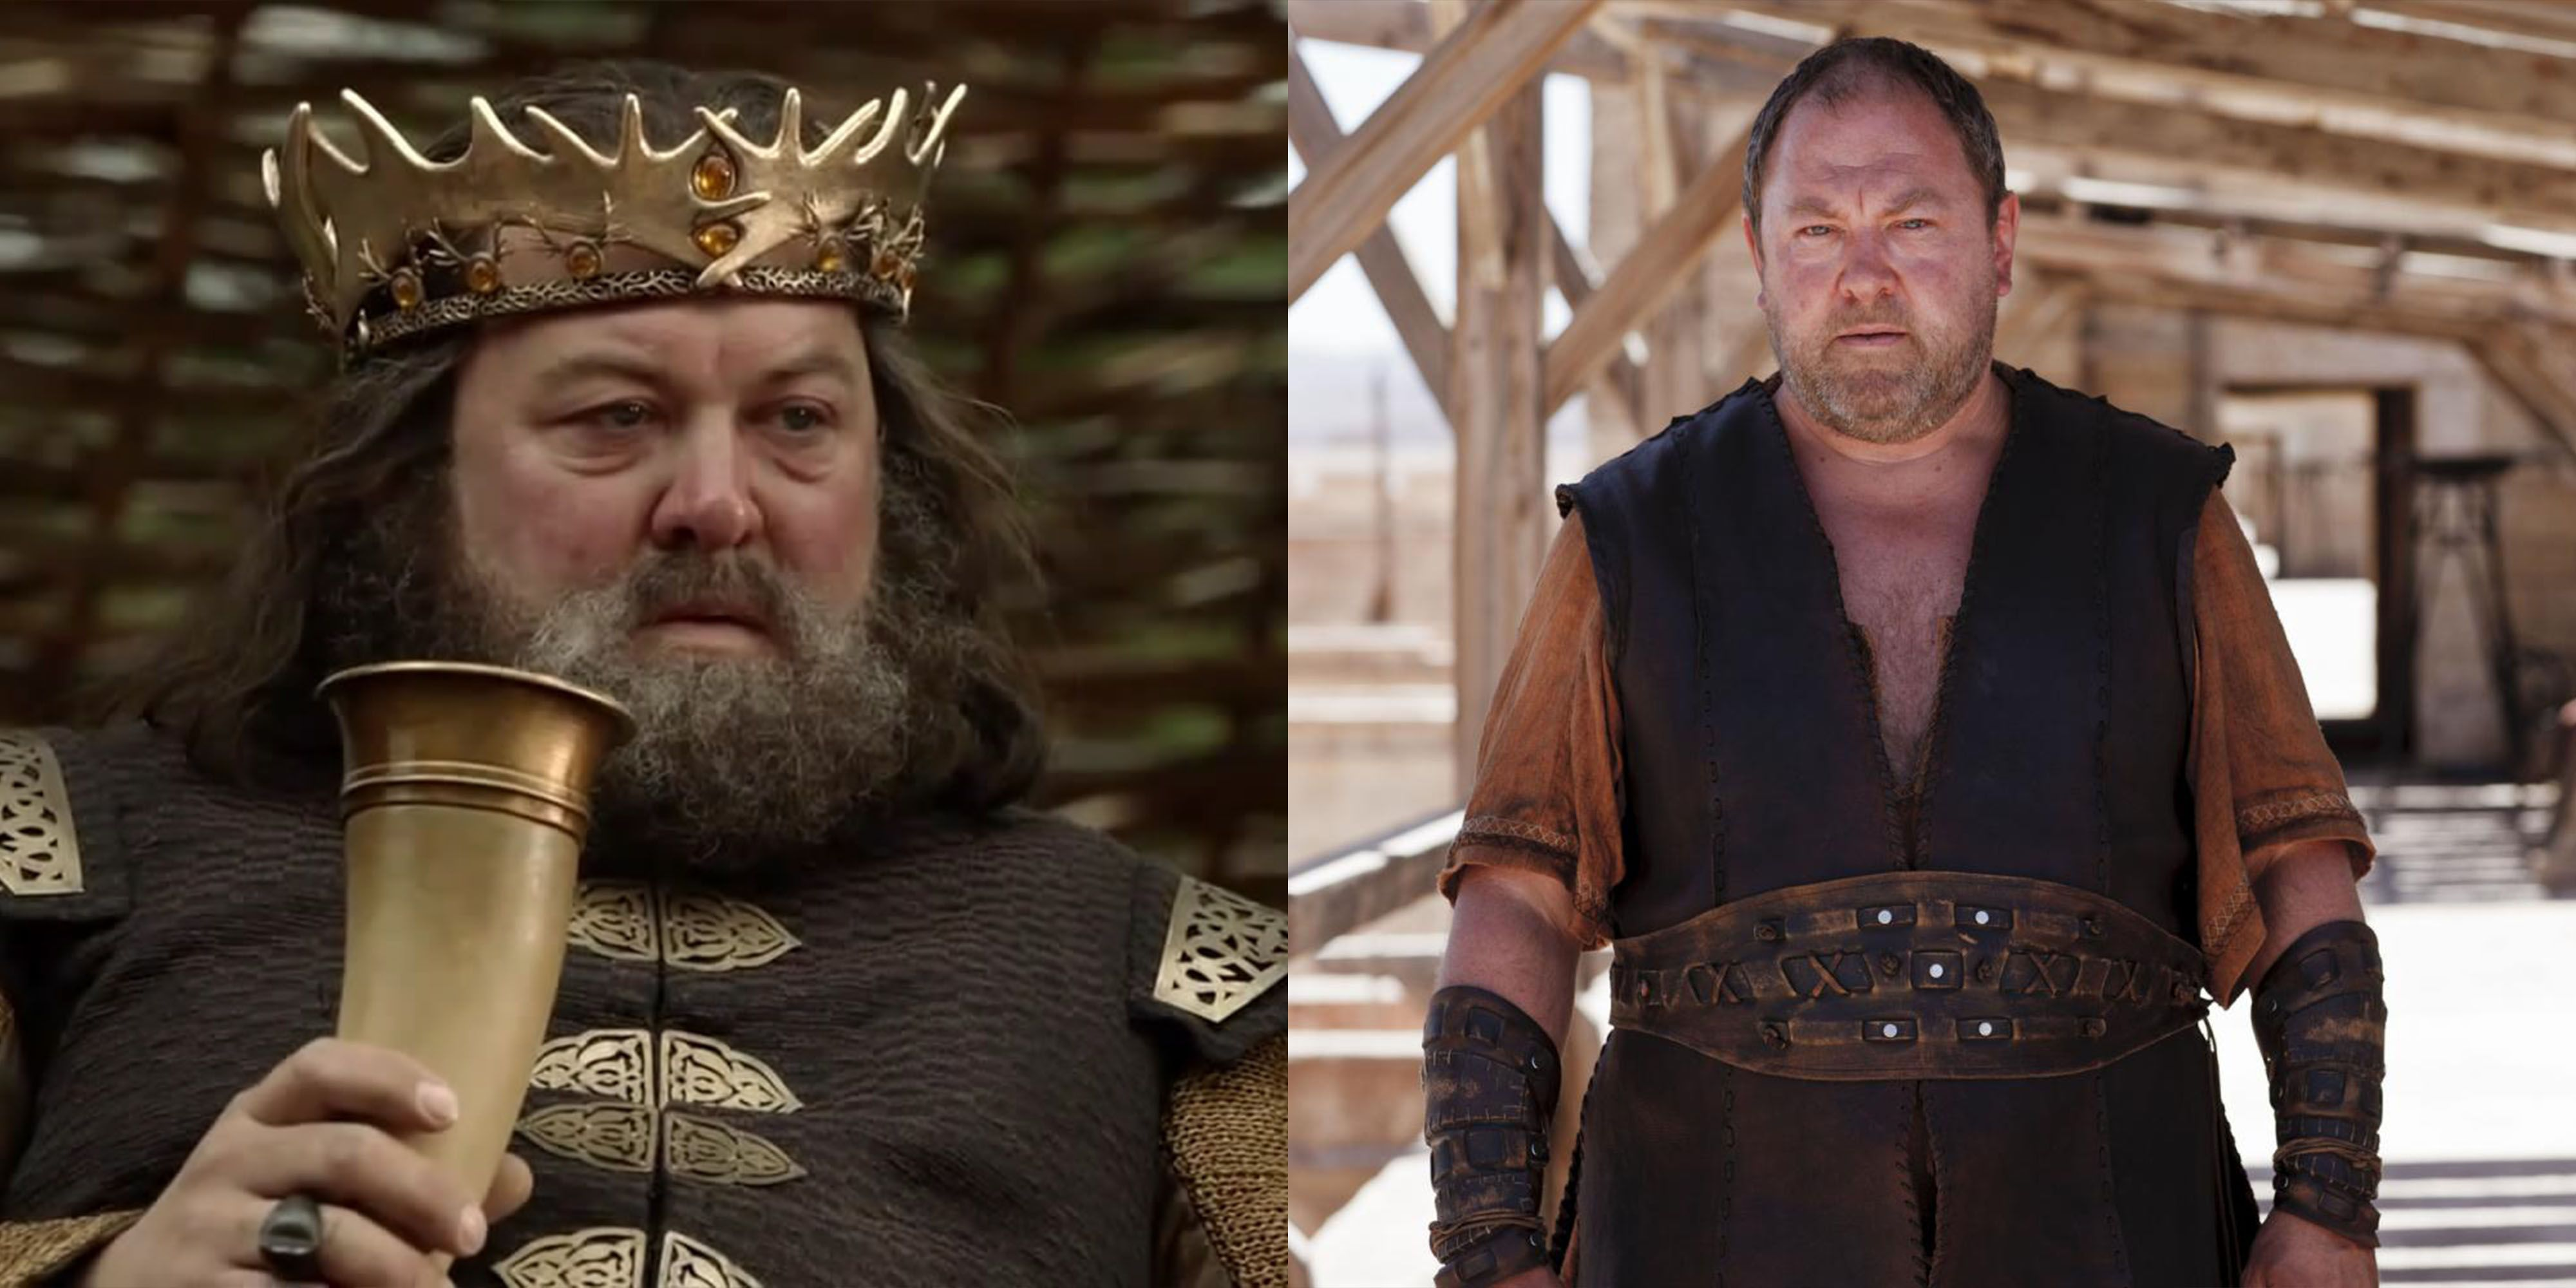 Mark Addy Addy played Robert Baratheon, the king whose death sets the titular game of thrones into action. After GOT , he went on to star on the BBC's Atlantis , as Hercules.